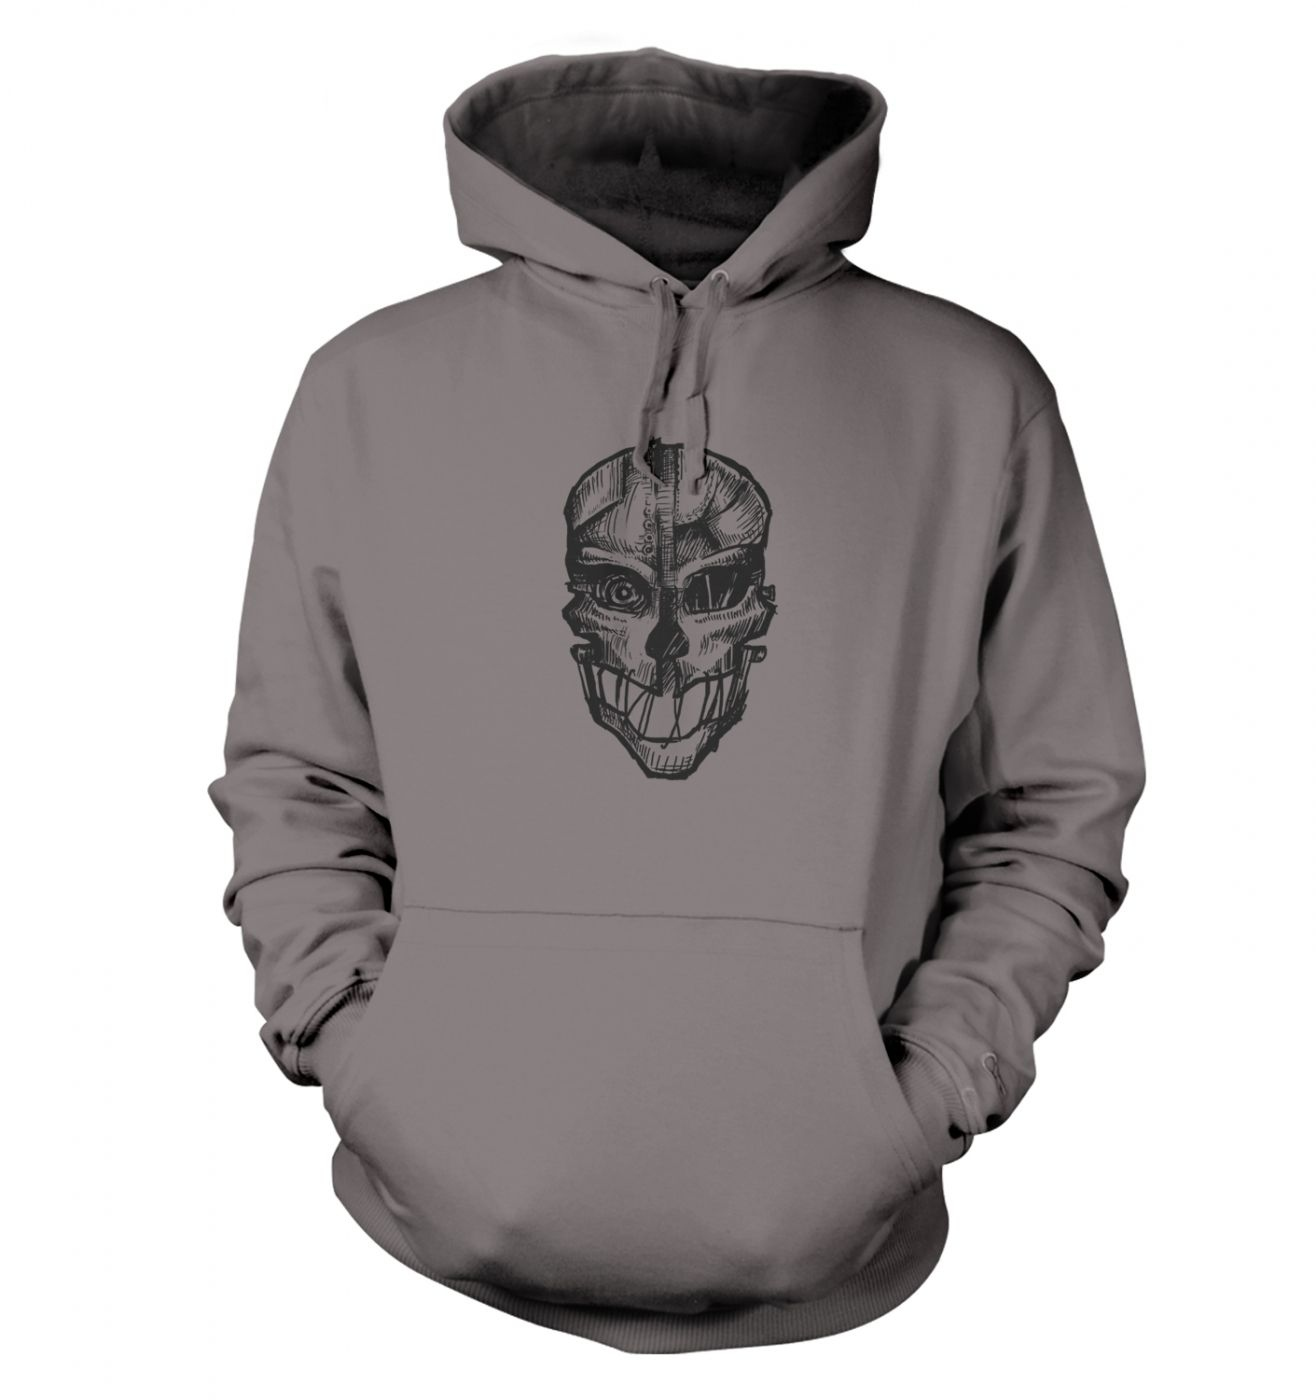 Assassin's Mask hoodie